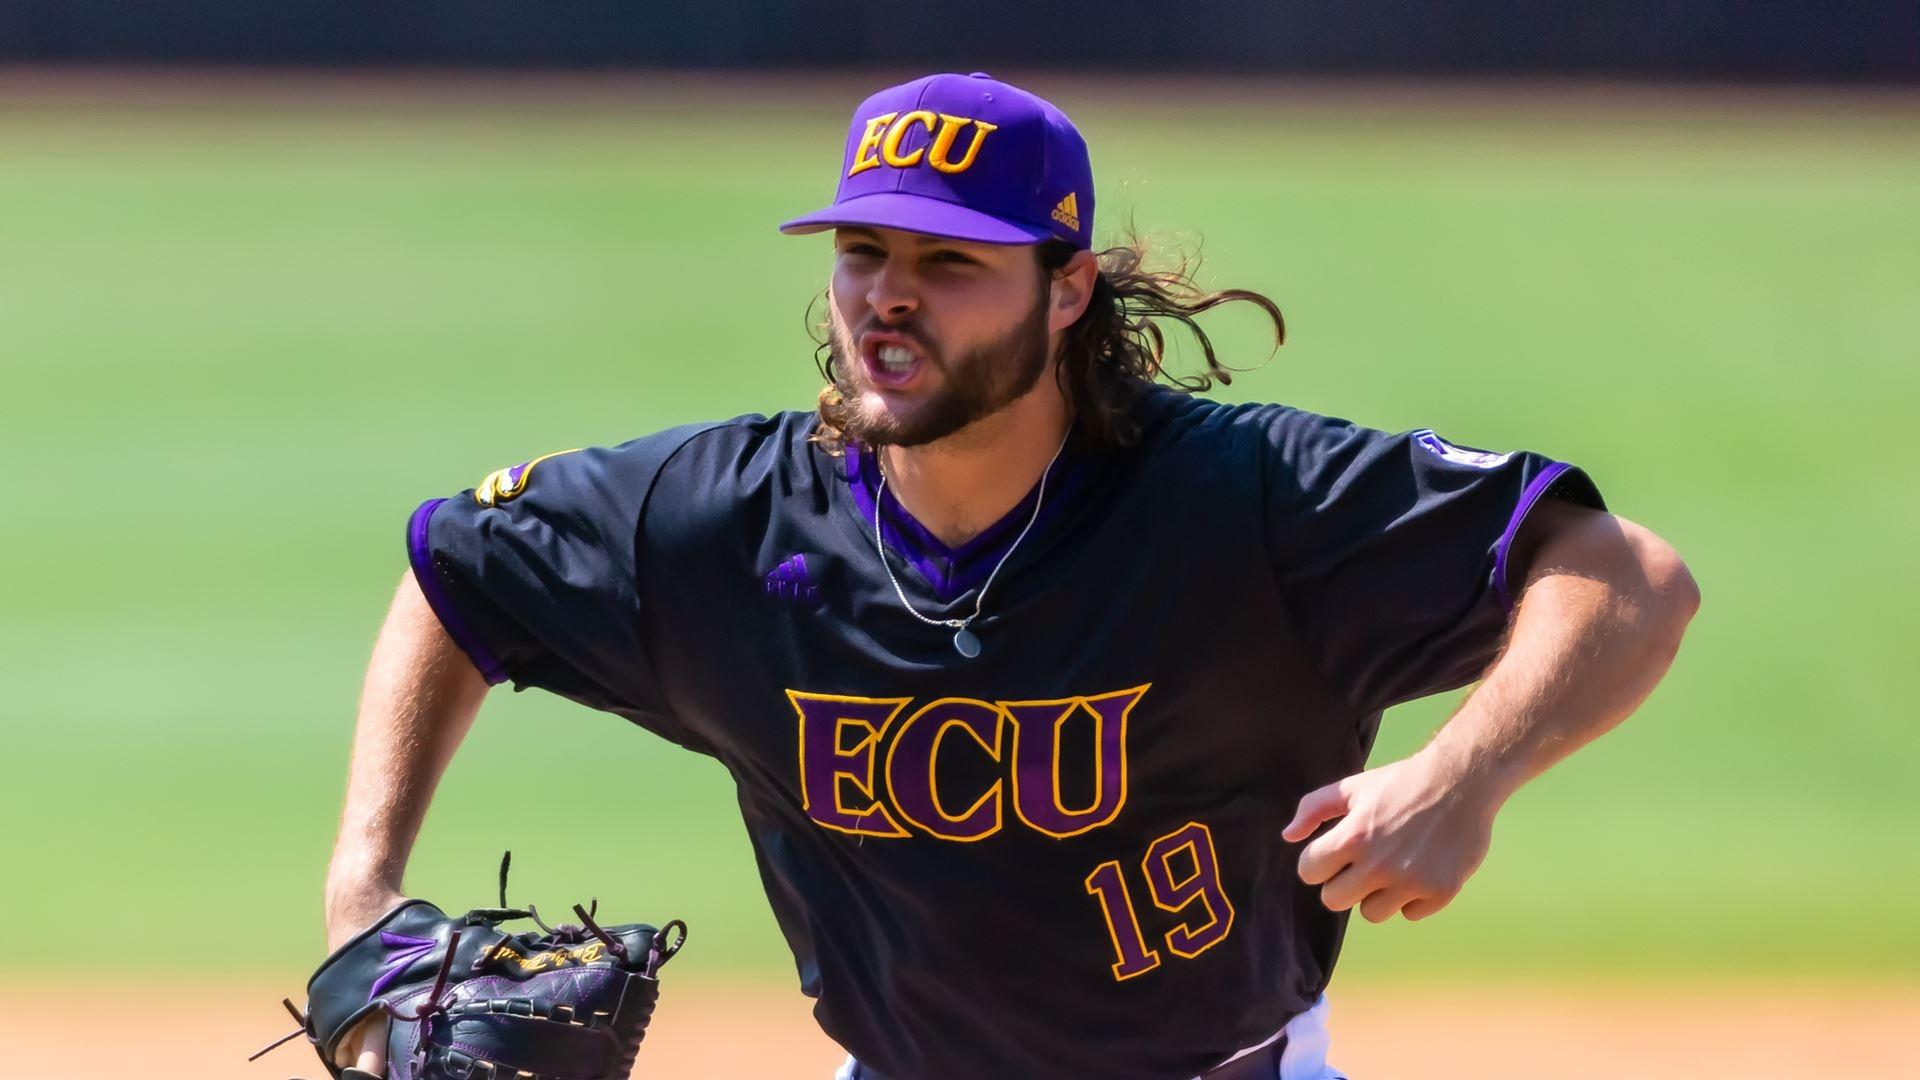 ECU Pirates baseball